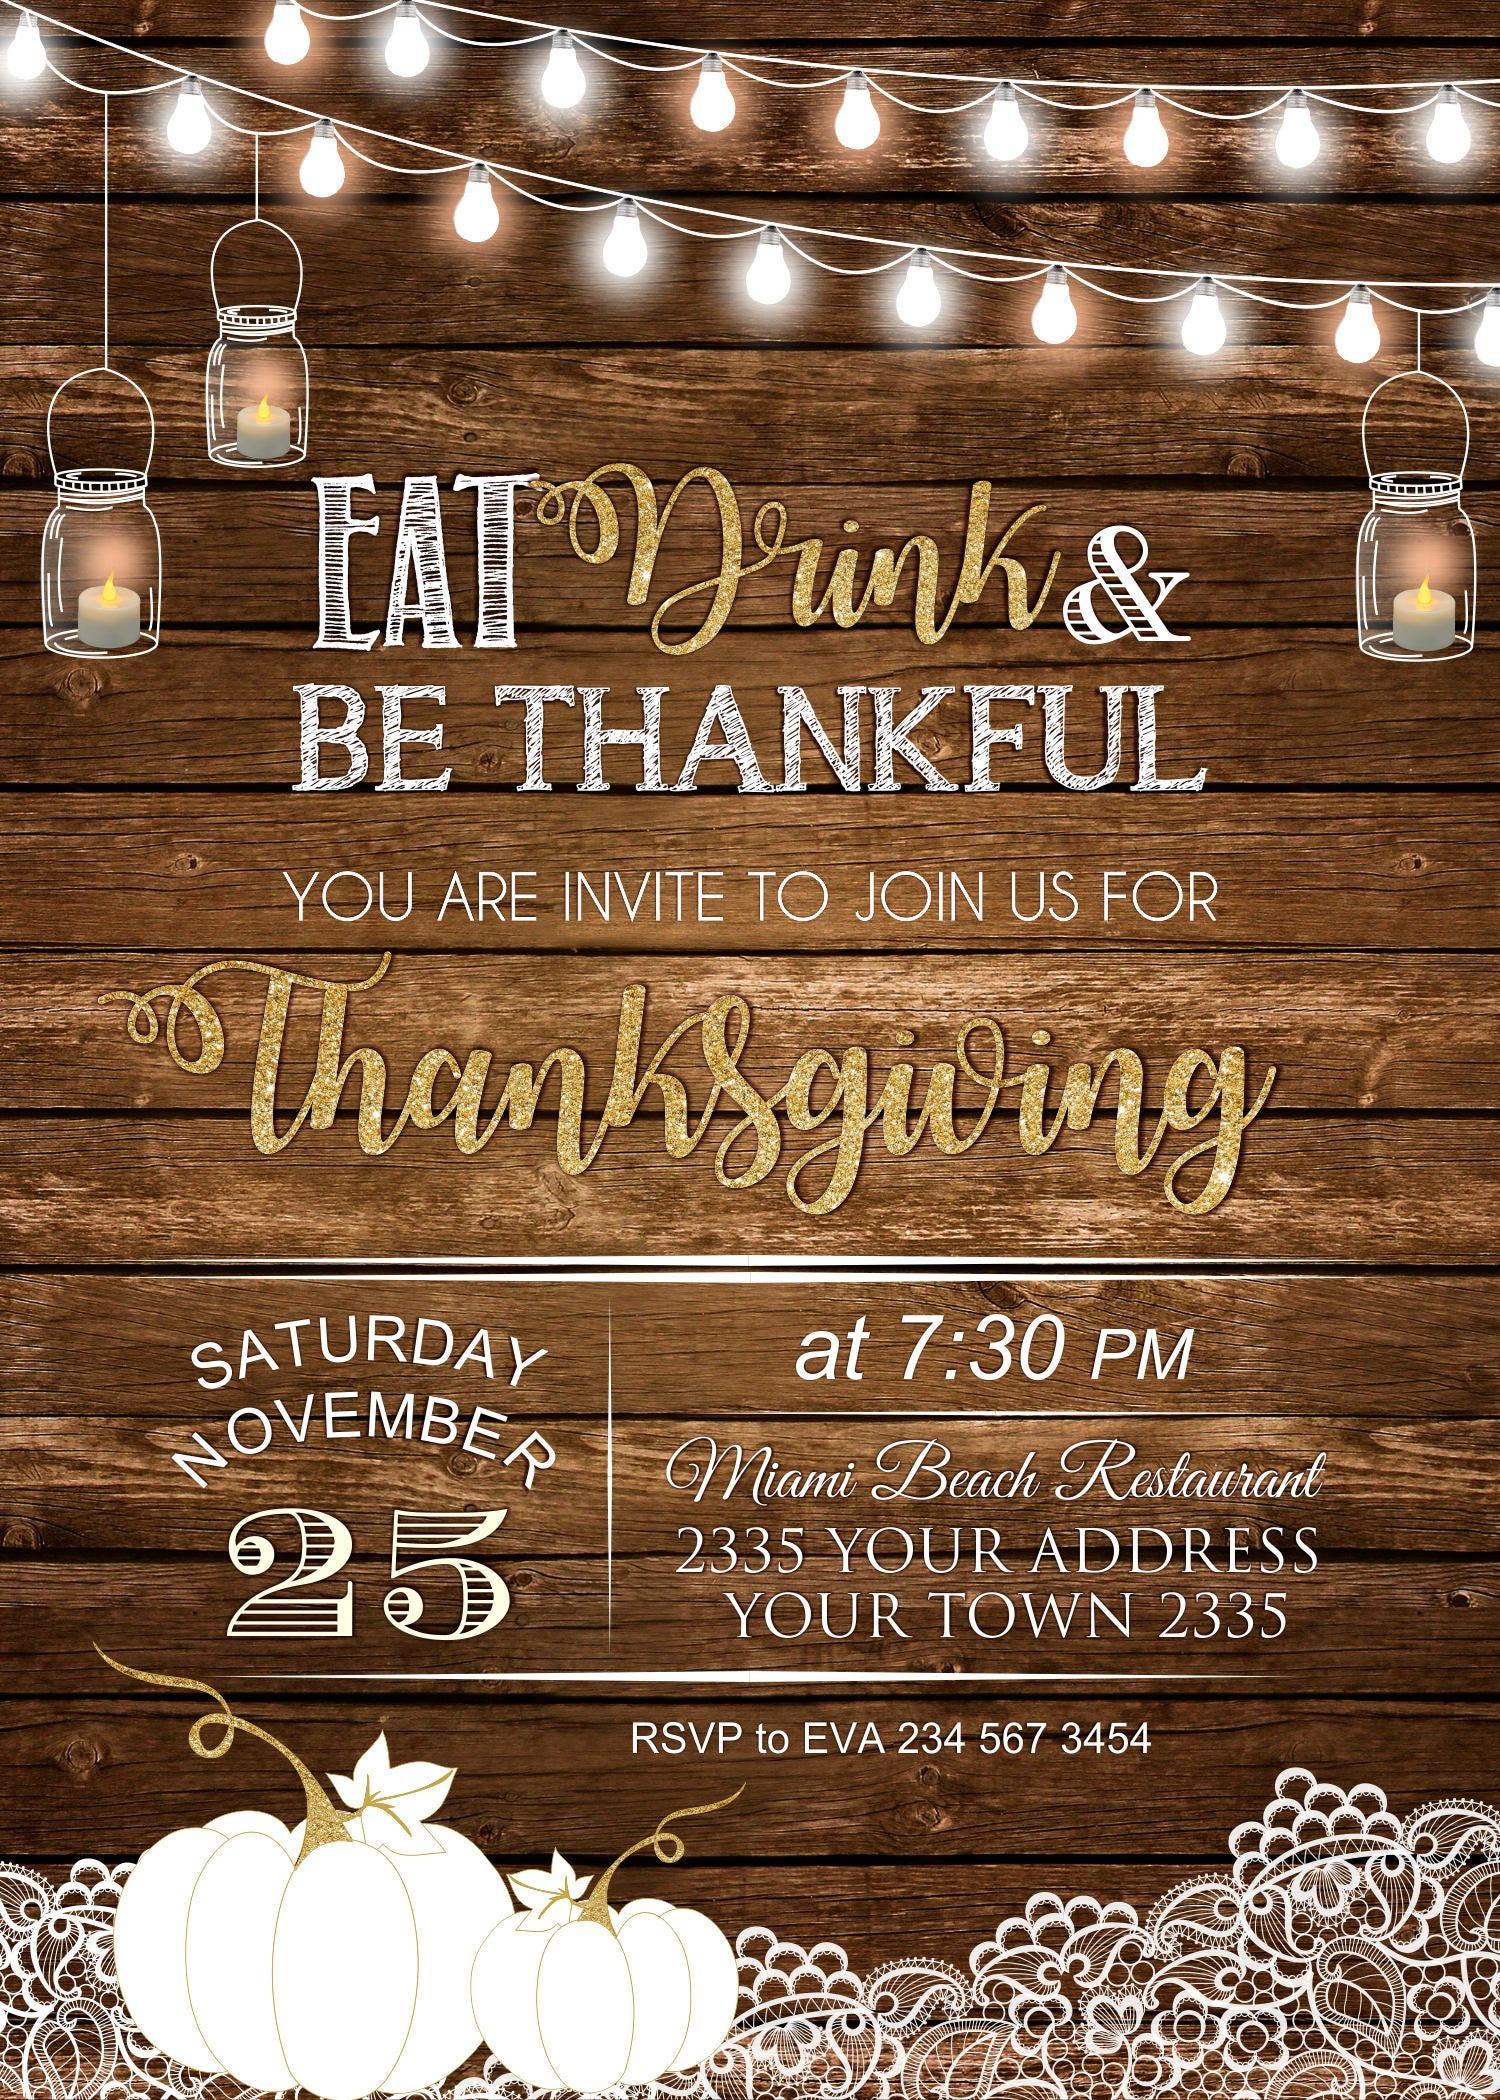 Eat Drink Be Thankful Invitation Thanksgiving Dinner InvitationThanksgiving Friendsgiving